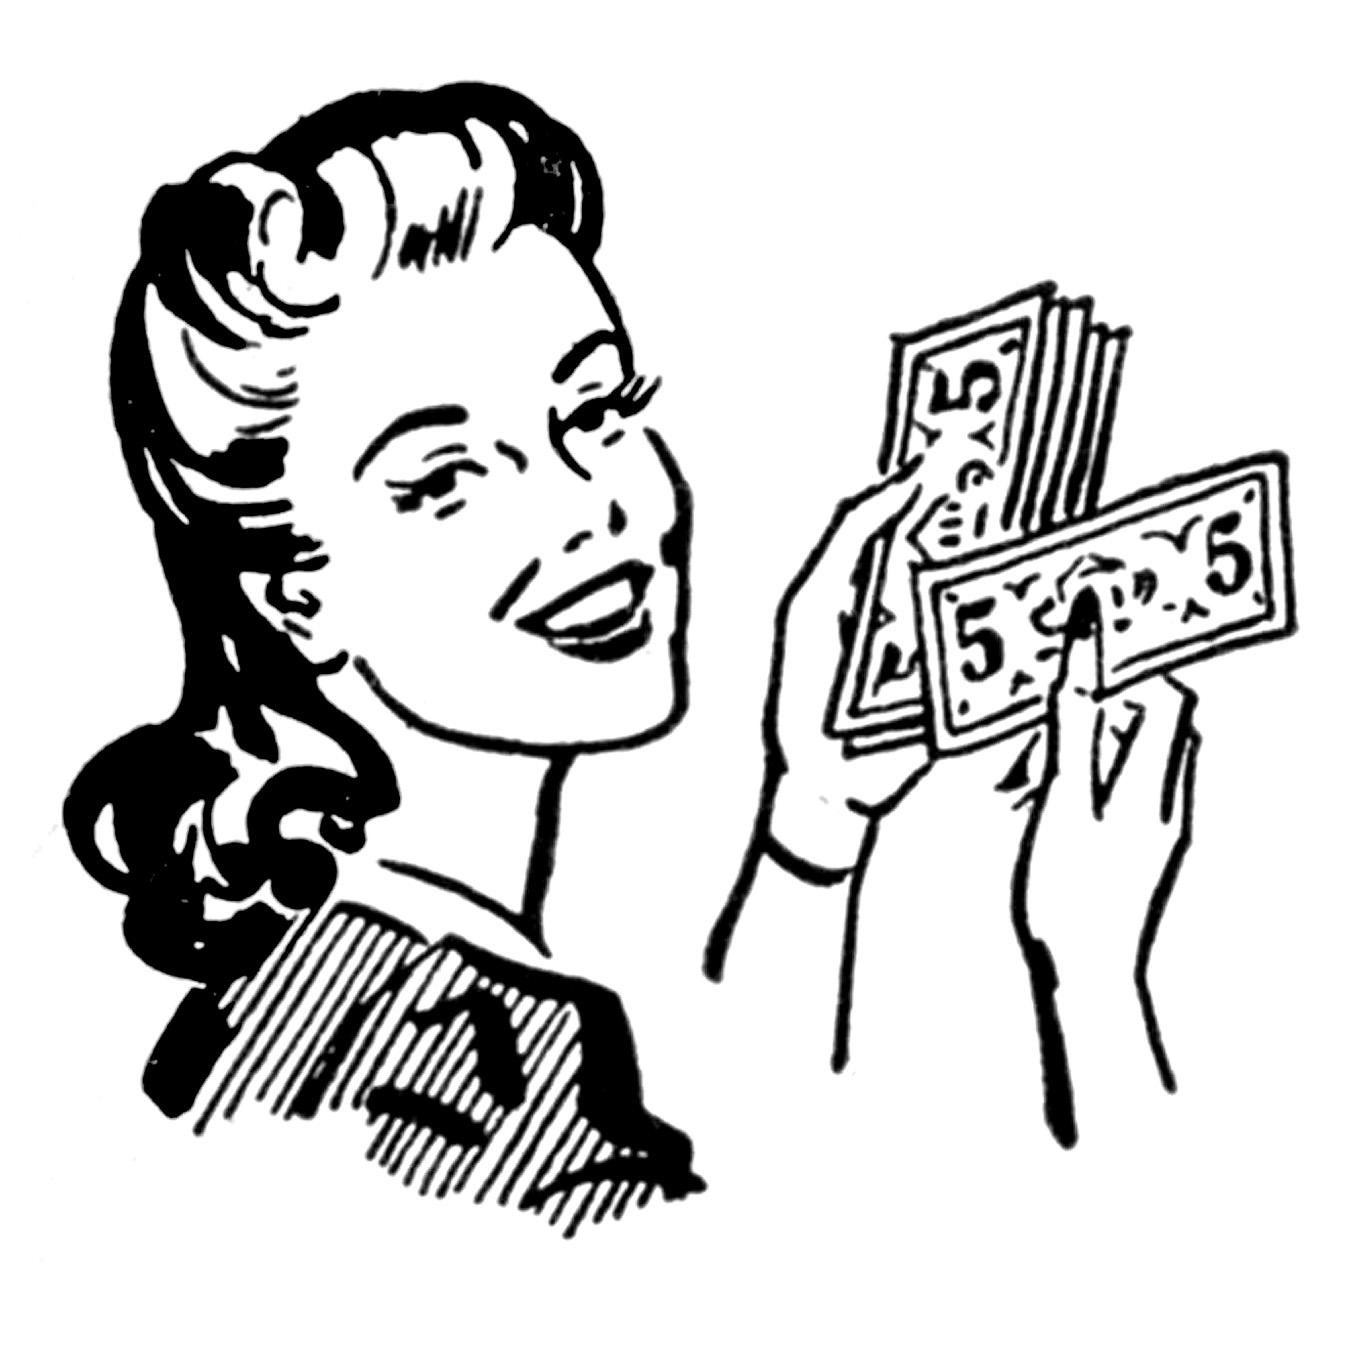 Retro Clip Art   Money Moms   Women   The Graphics Fairy